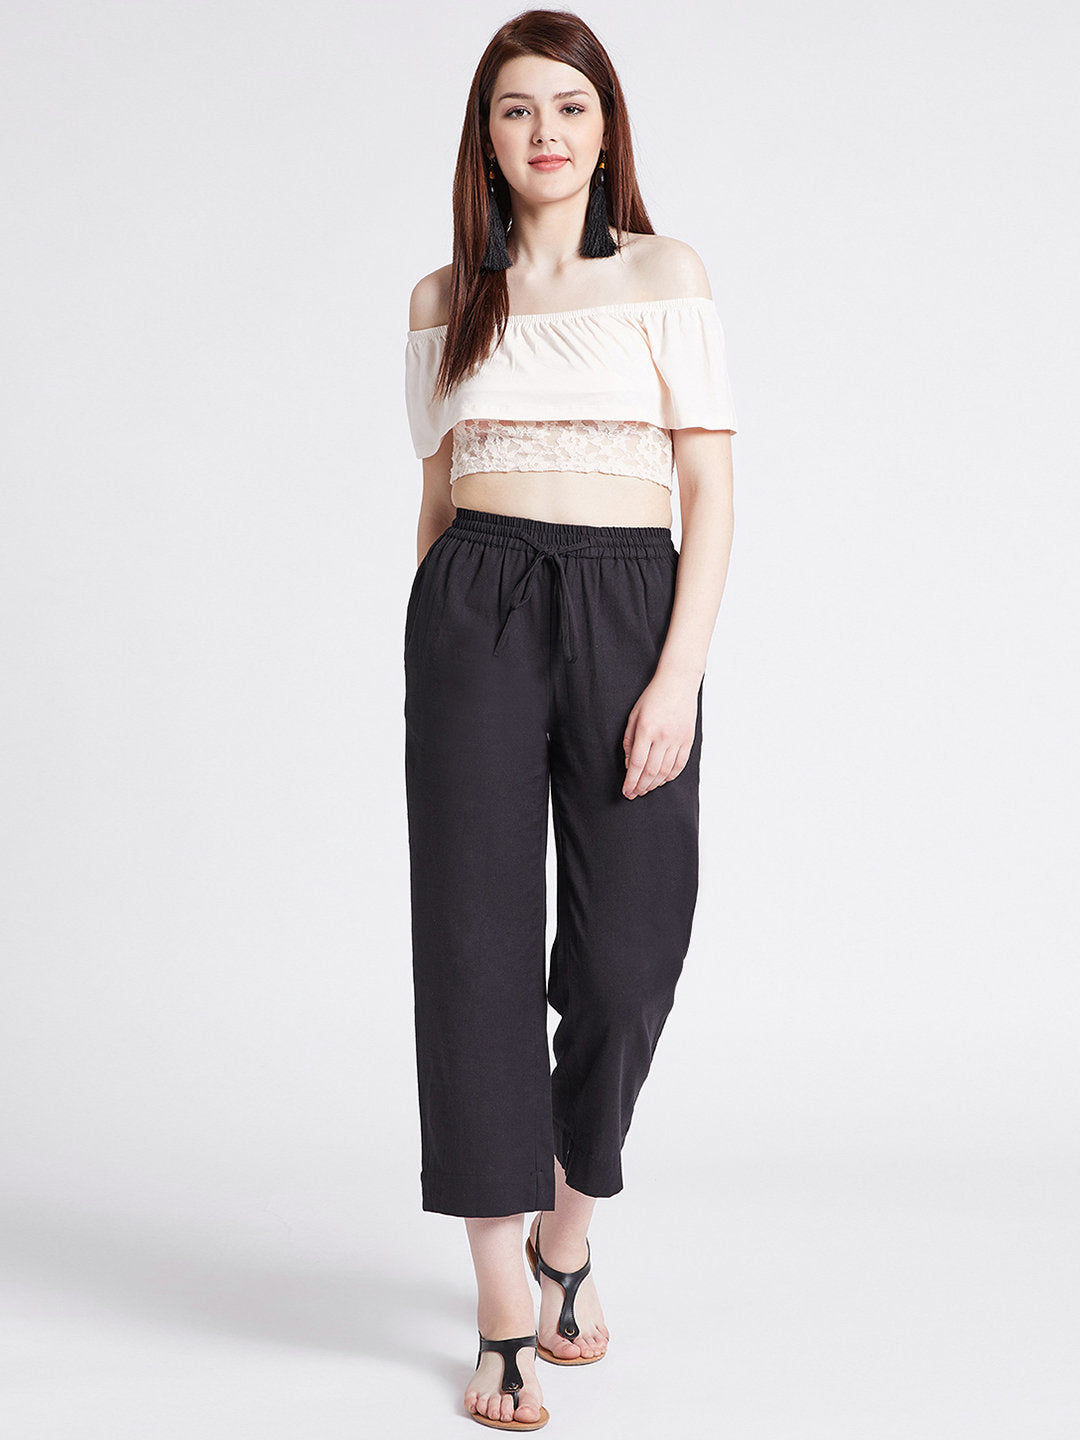 One Black cotton straight pant with pockets